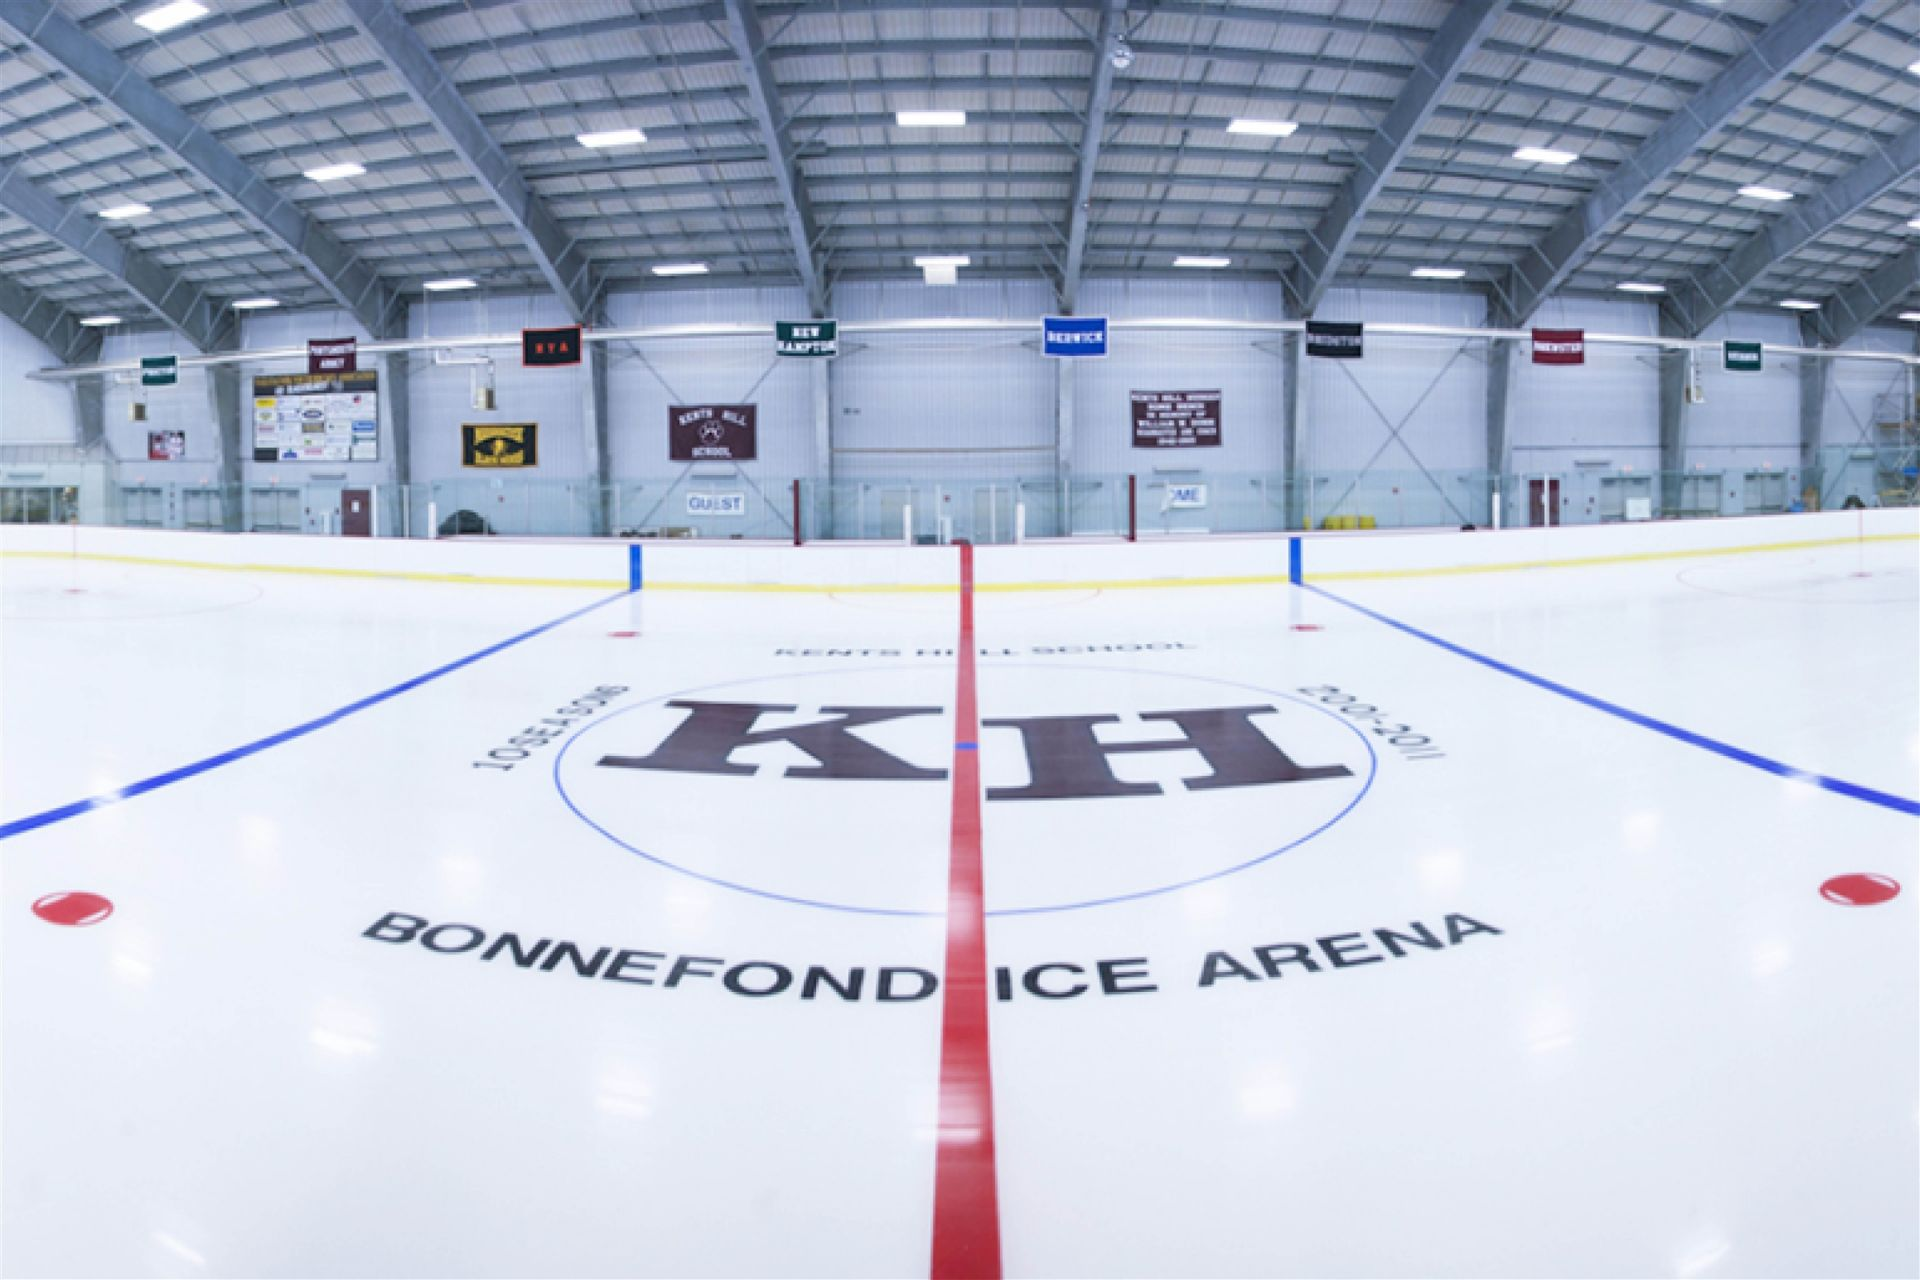 2011: The Rist and Joy Bonnefond Ice Arena is dedicated to the Bonnefond's for their dedication to the advancement of Kents Hill School during Mr. Bonnefond's tenure as Head of School.